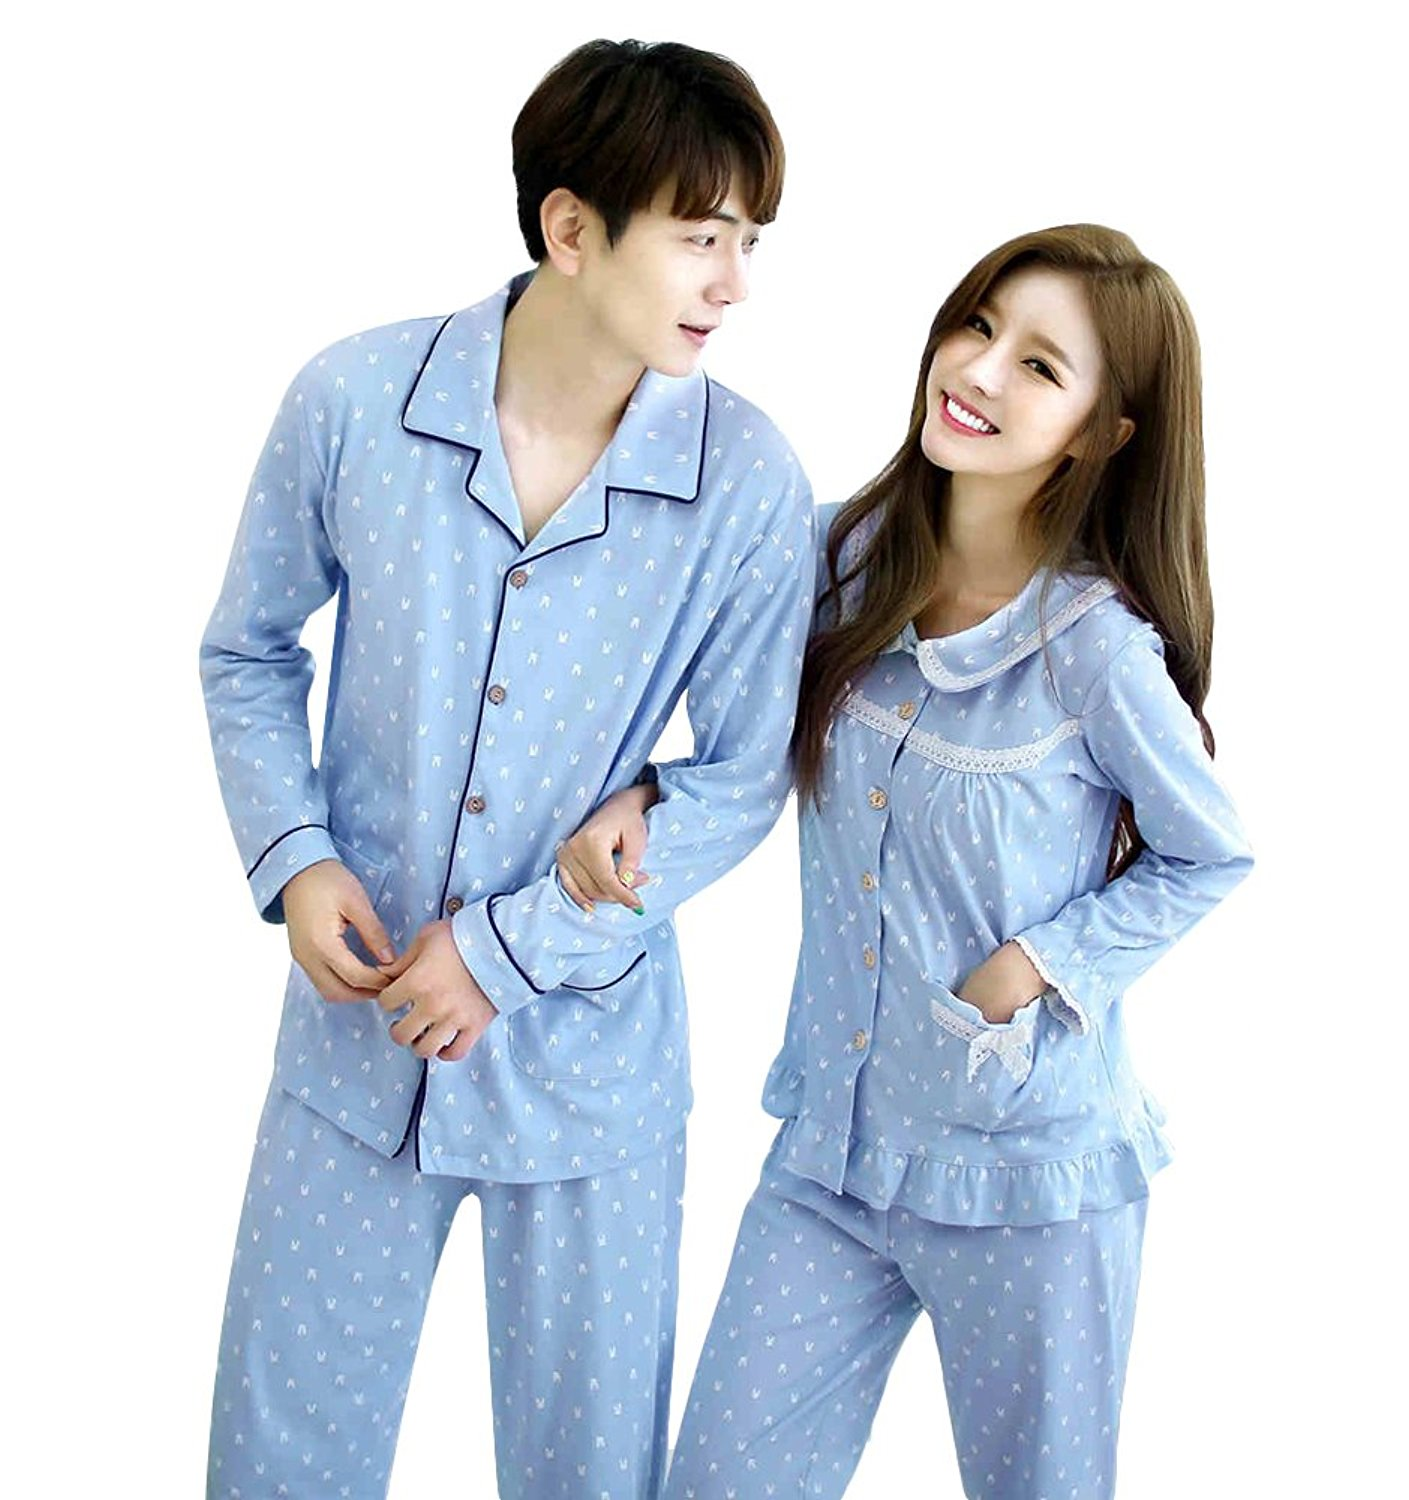 587139d6ac Get Quotations · Nueking Long Sleeve Casual Matching Couples Cotton Men  Women Pajamas Set